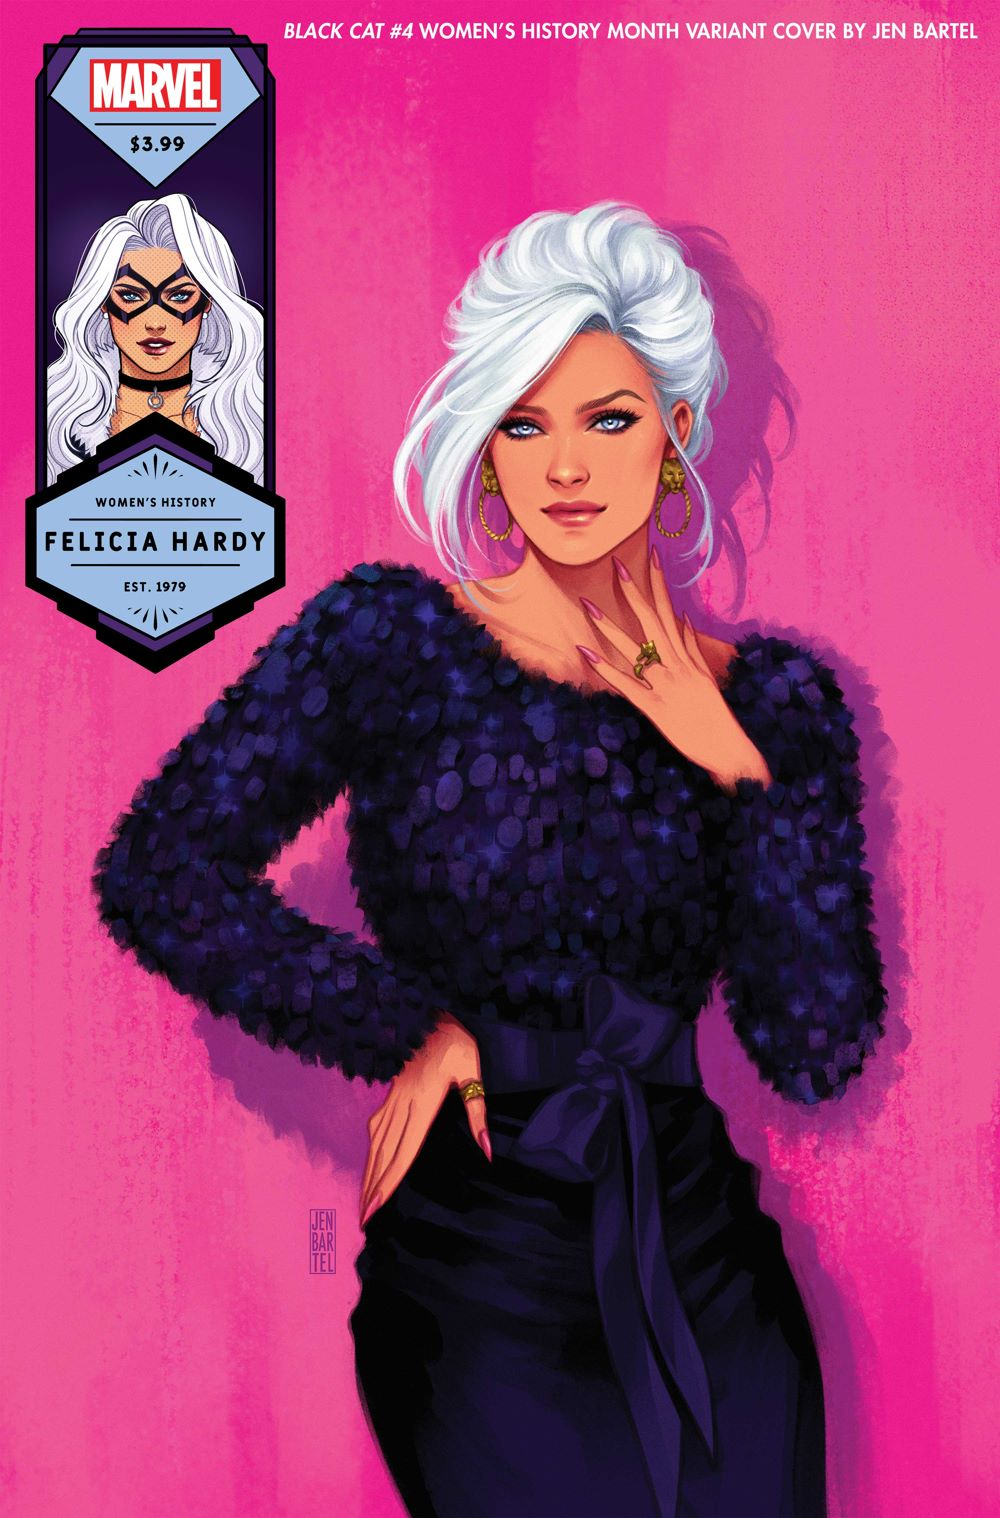 BLACKCAT2020004_Bartel_Womens-History-Month Next set of Marvel WOMEN'S HISTORY MONTH variant covers revealed